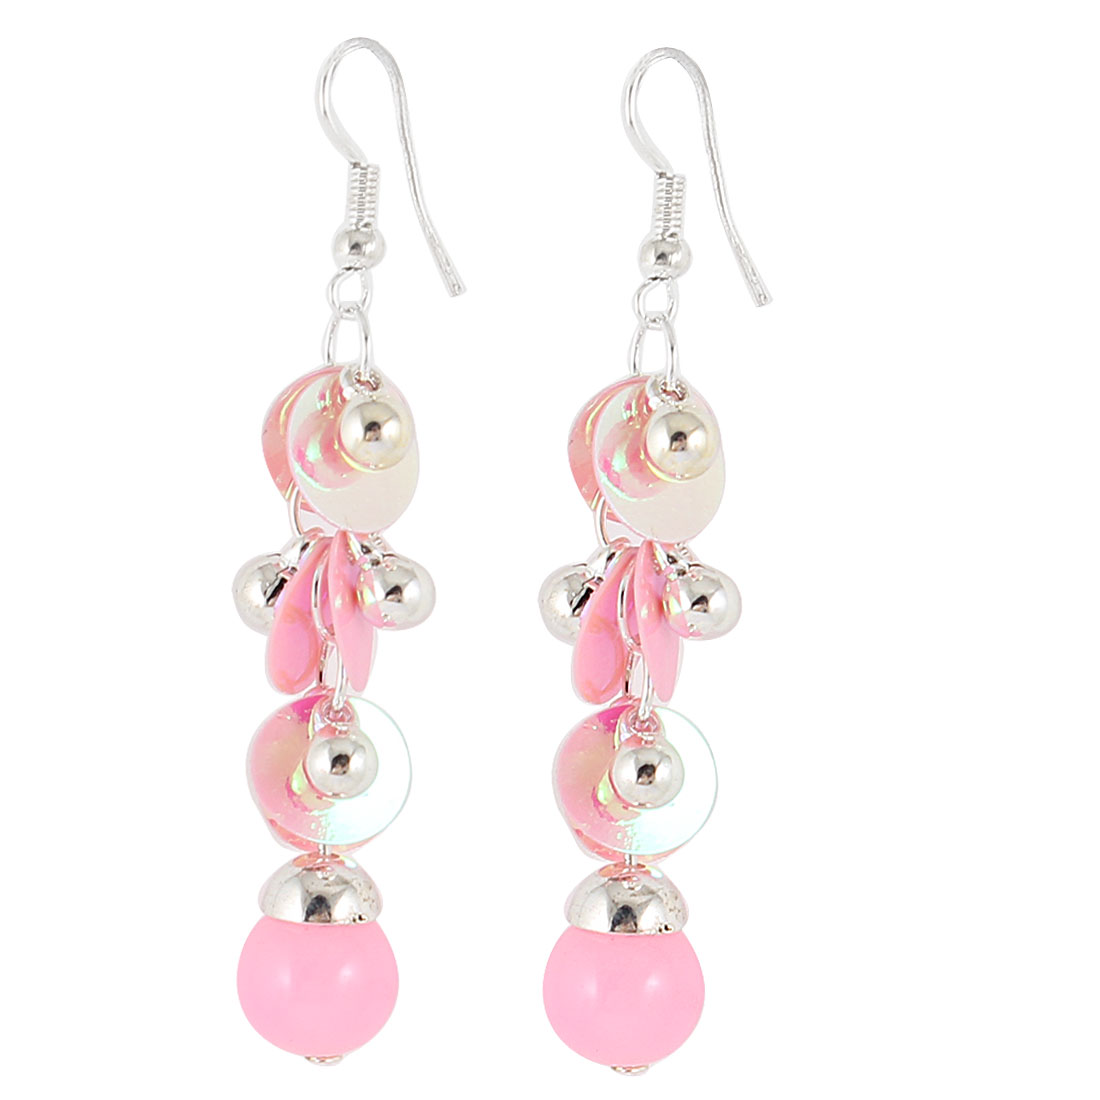 Pink Silver Tone Plastic Bead Decor Pendant Fish Hook Earrings Pair for Woman - image 1 of 1